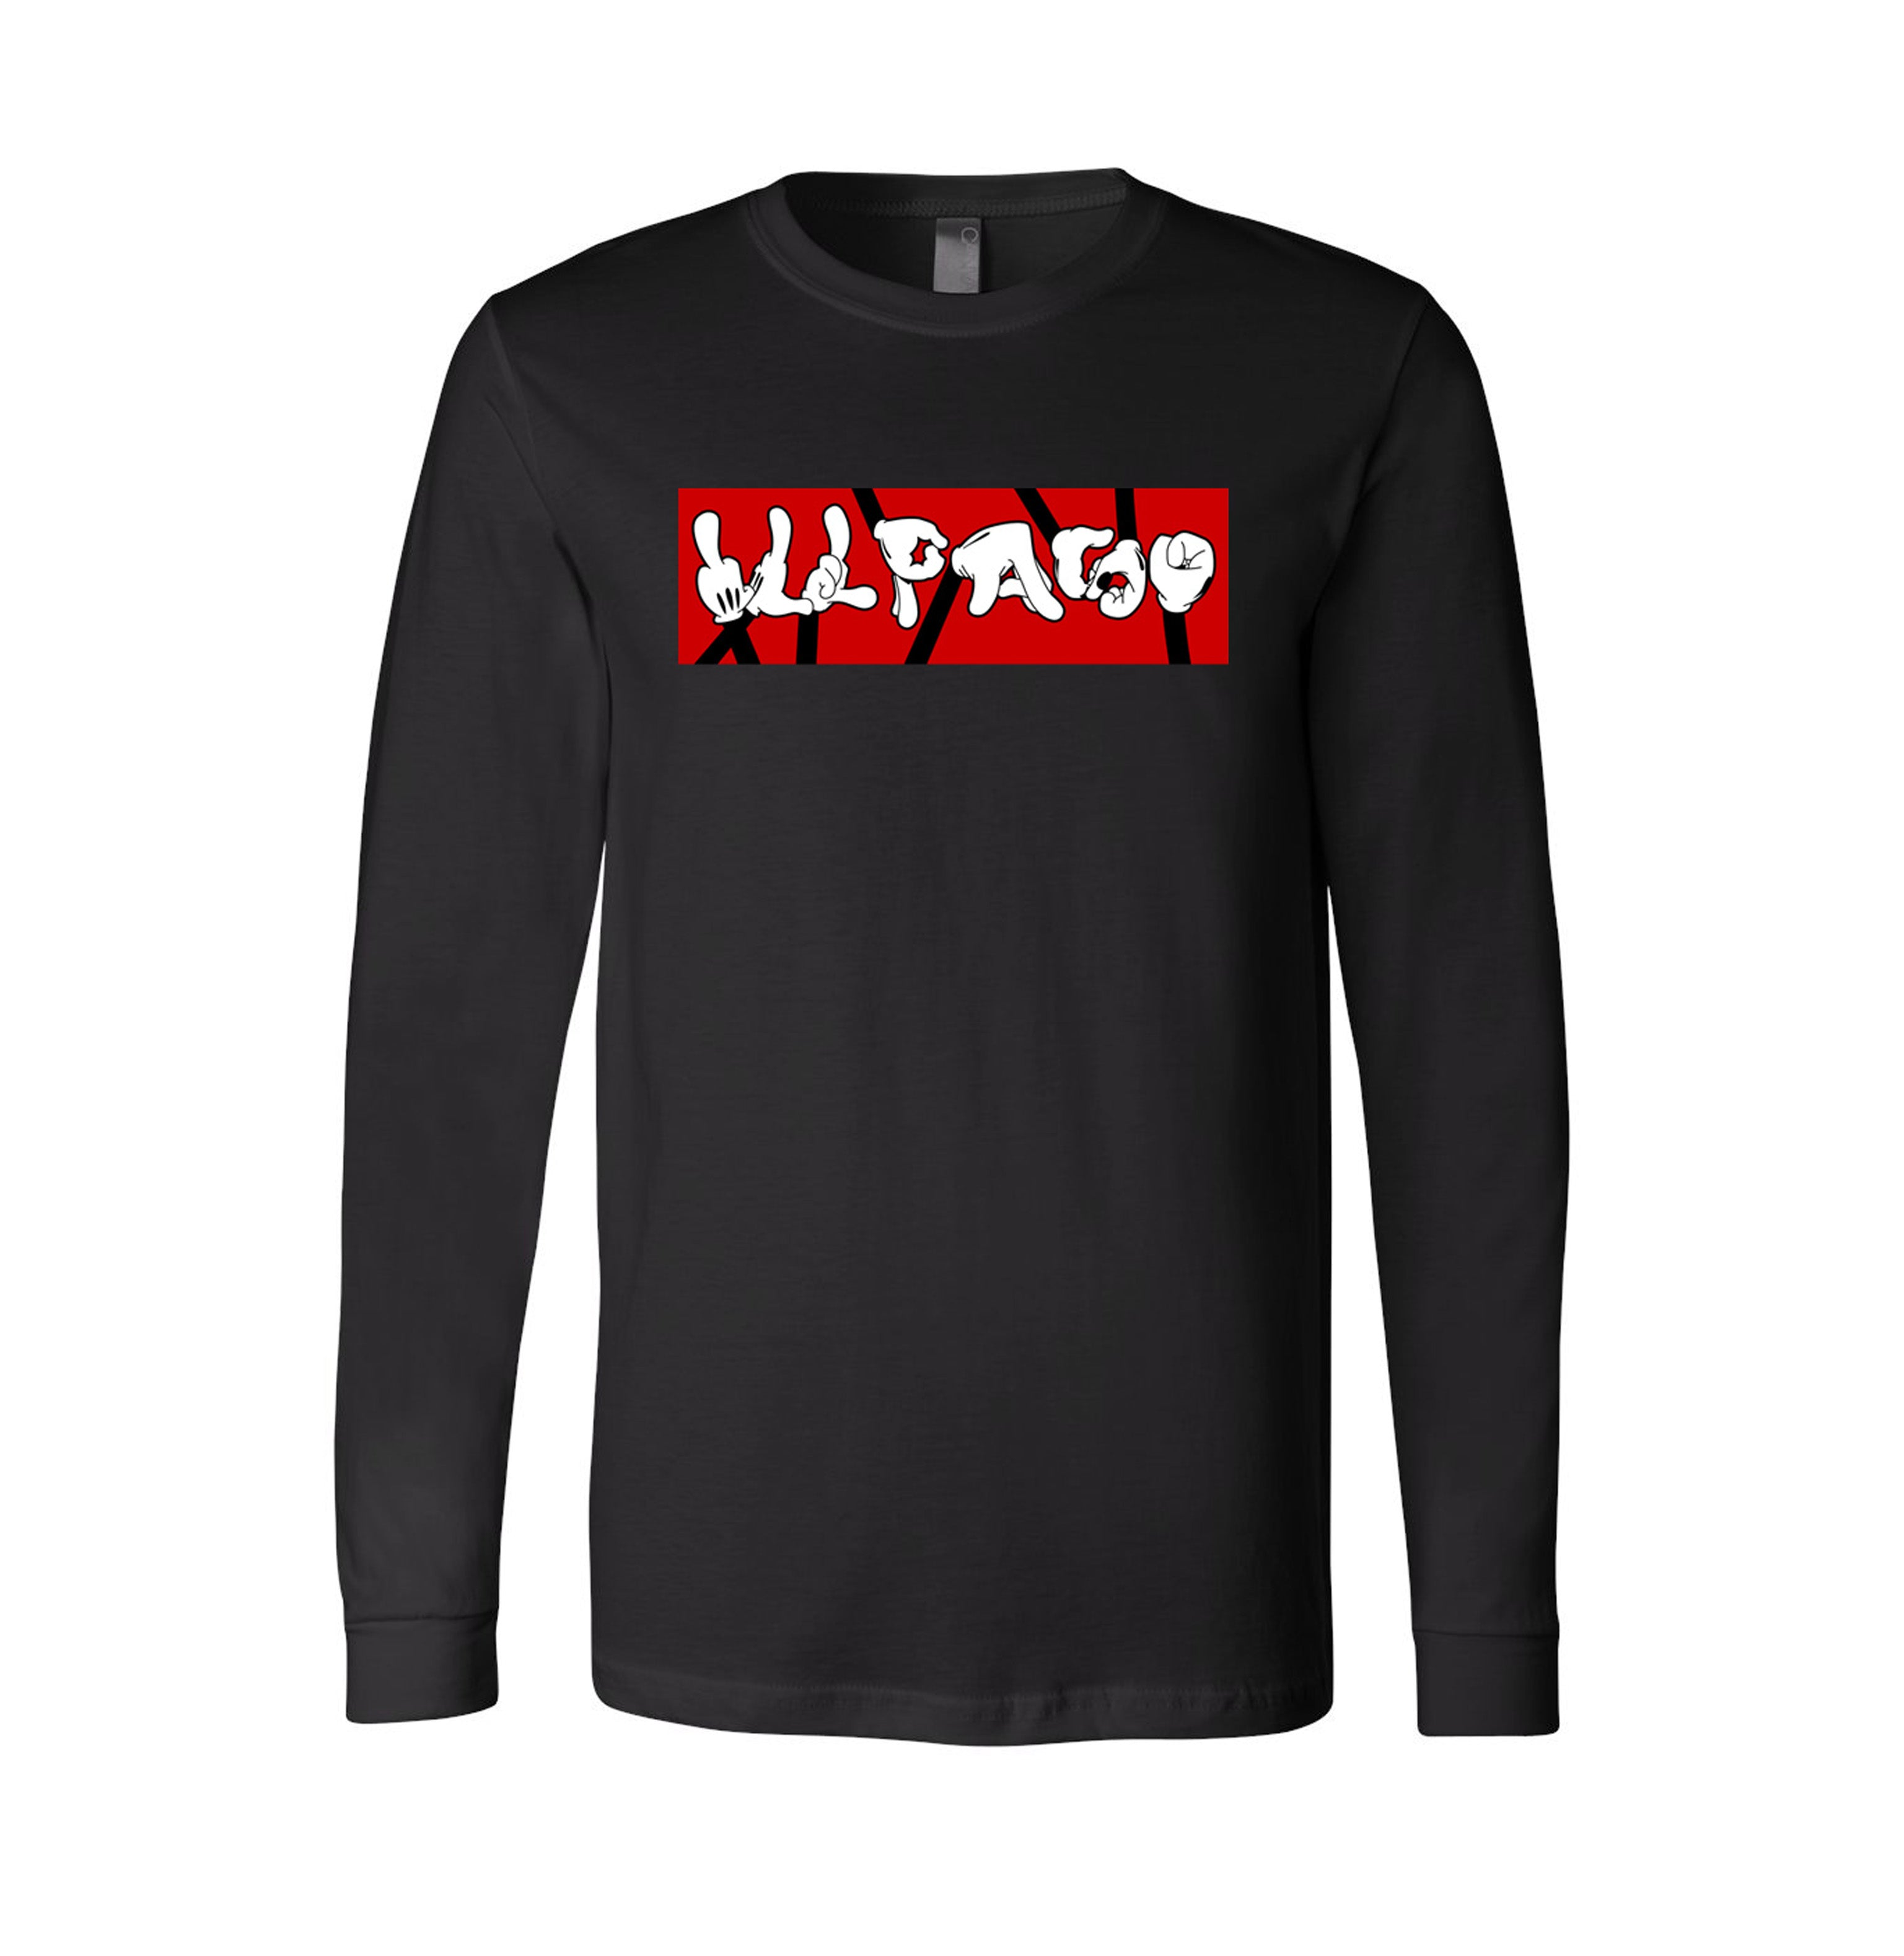 """Hand Signs"" Long Sleeve T-shirt (Black) by Don Art"